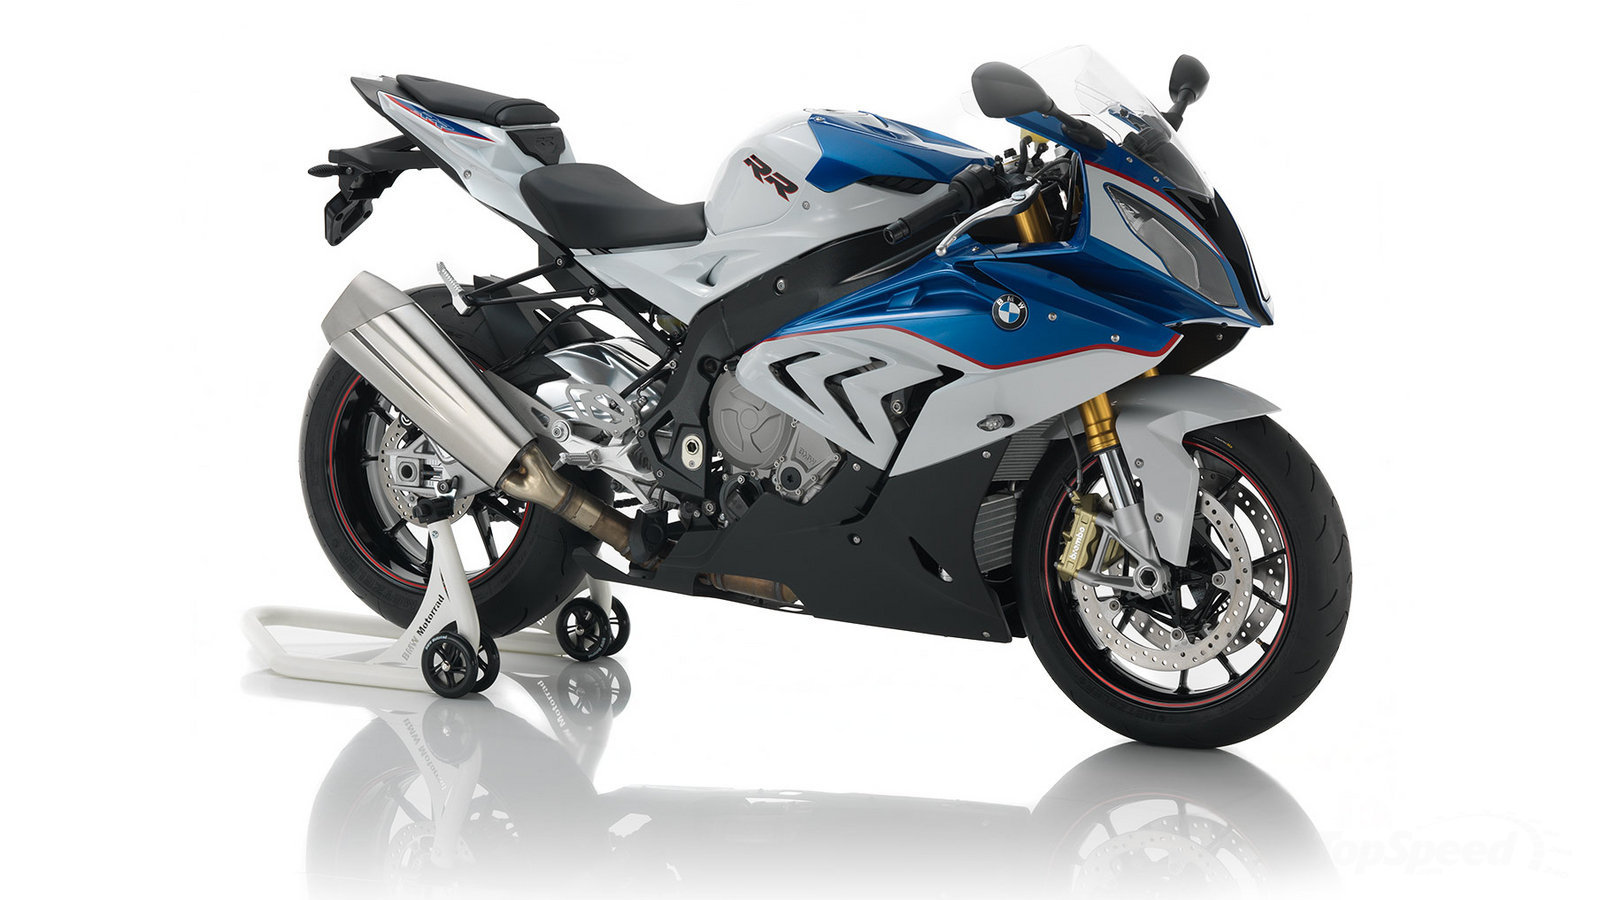 2015 2017 bmw s 1000 rr picture 678716 motorcycle review top speed. Black Bedroom Furniture Sets. Home Design Ideas